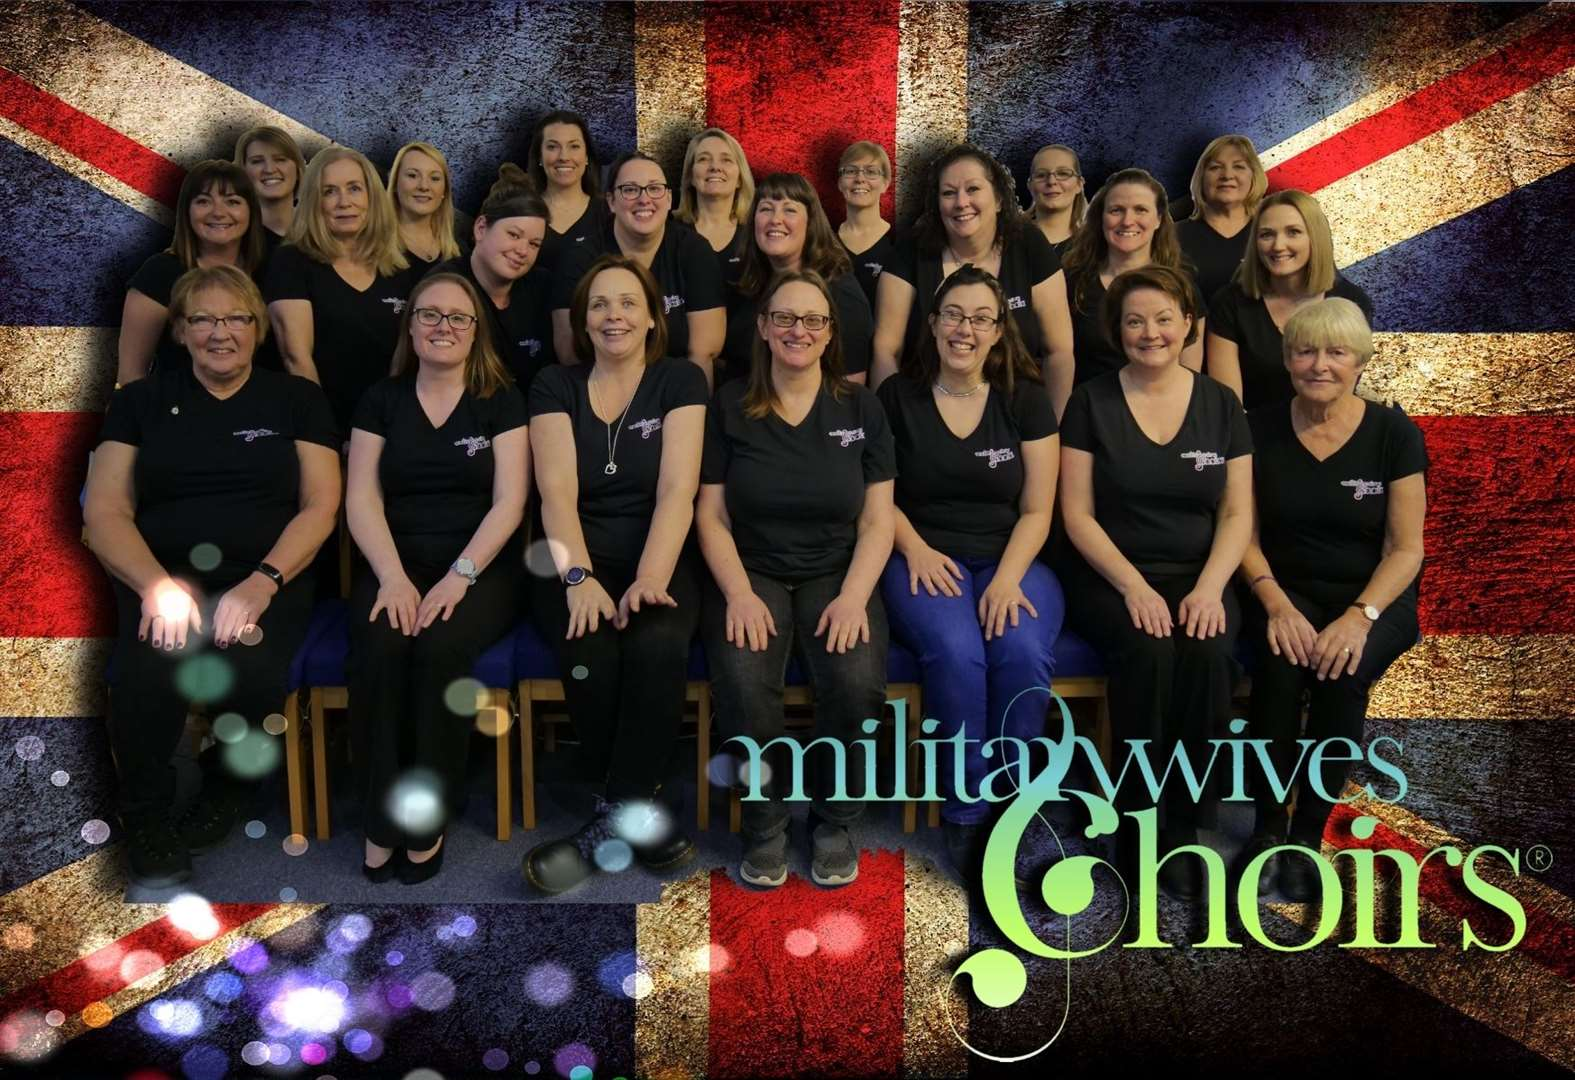 Exciting time for Marham Military Wives Choir as Lionsgate film hits the big screen